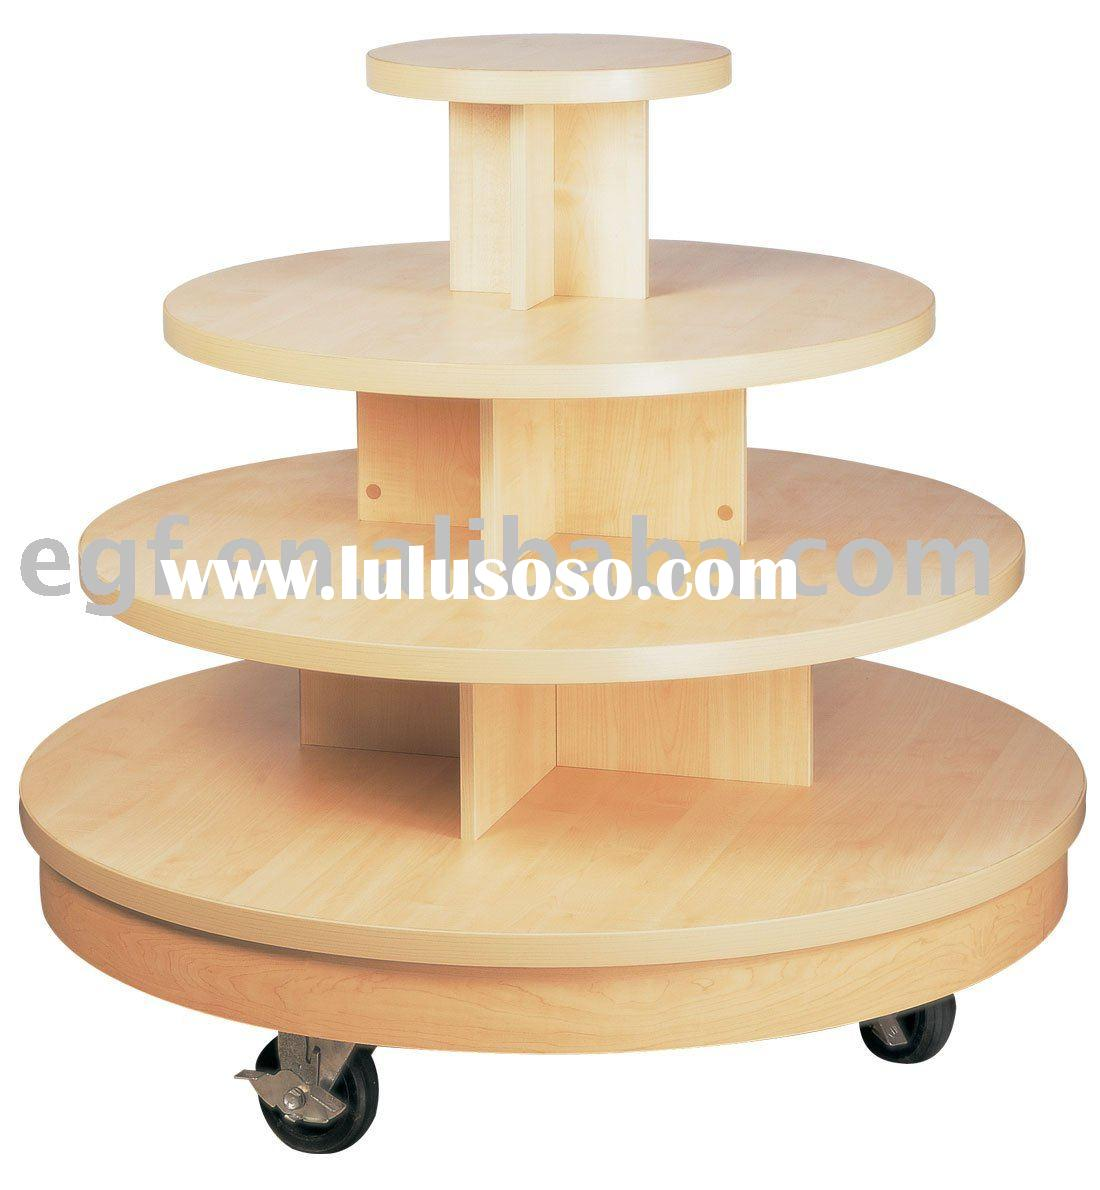 Round Table / Tiered Display Table / Wooden Table